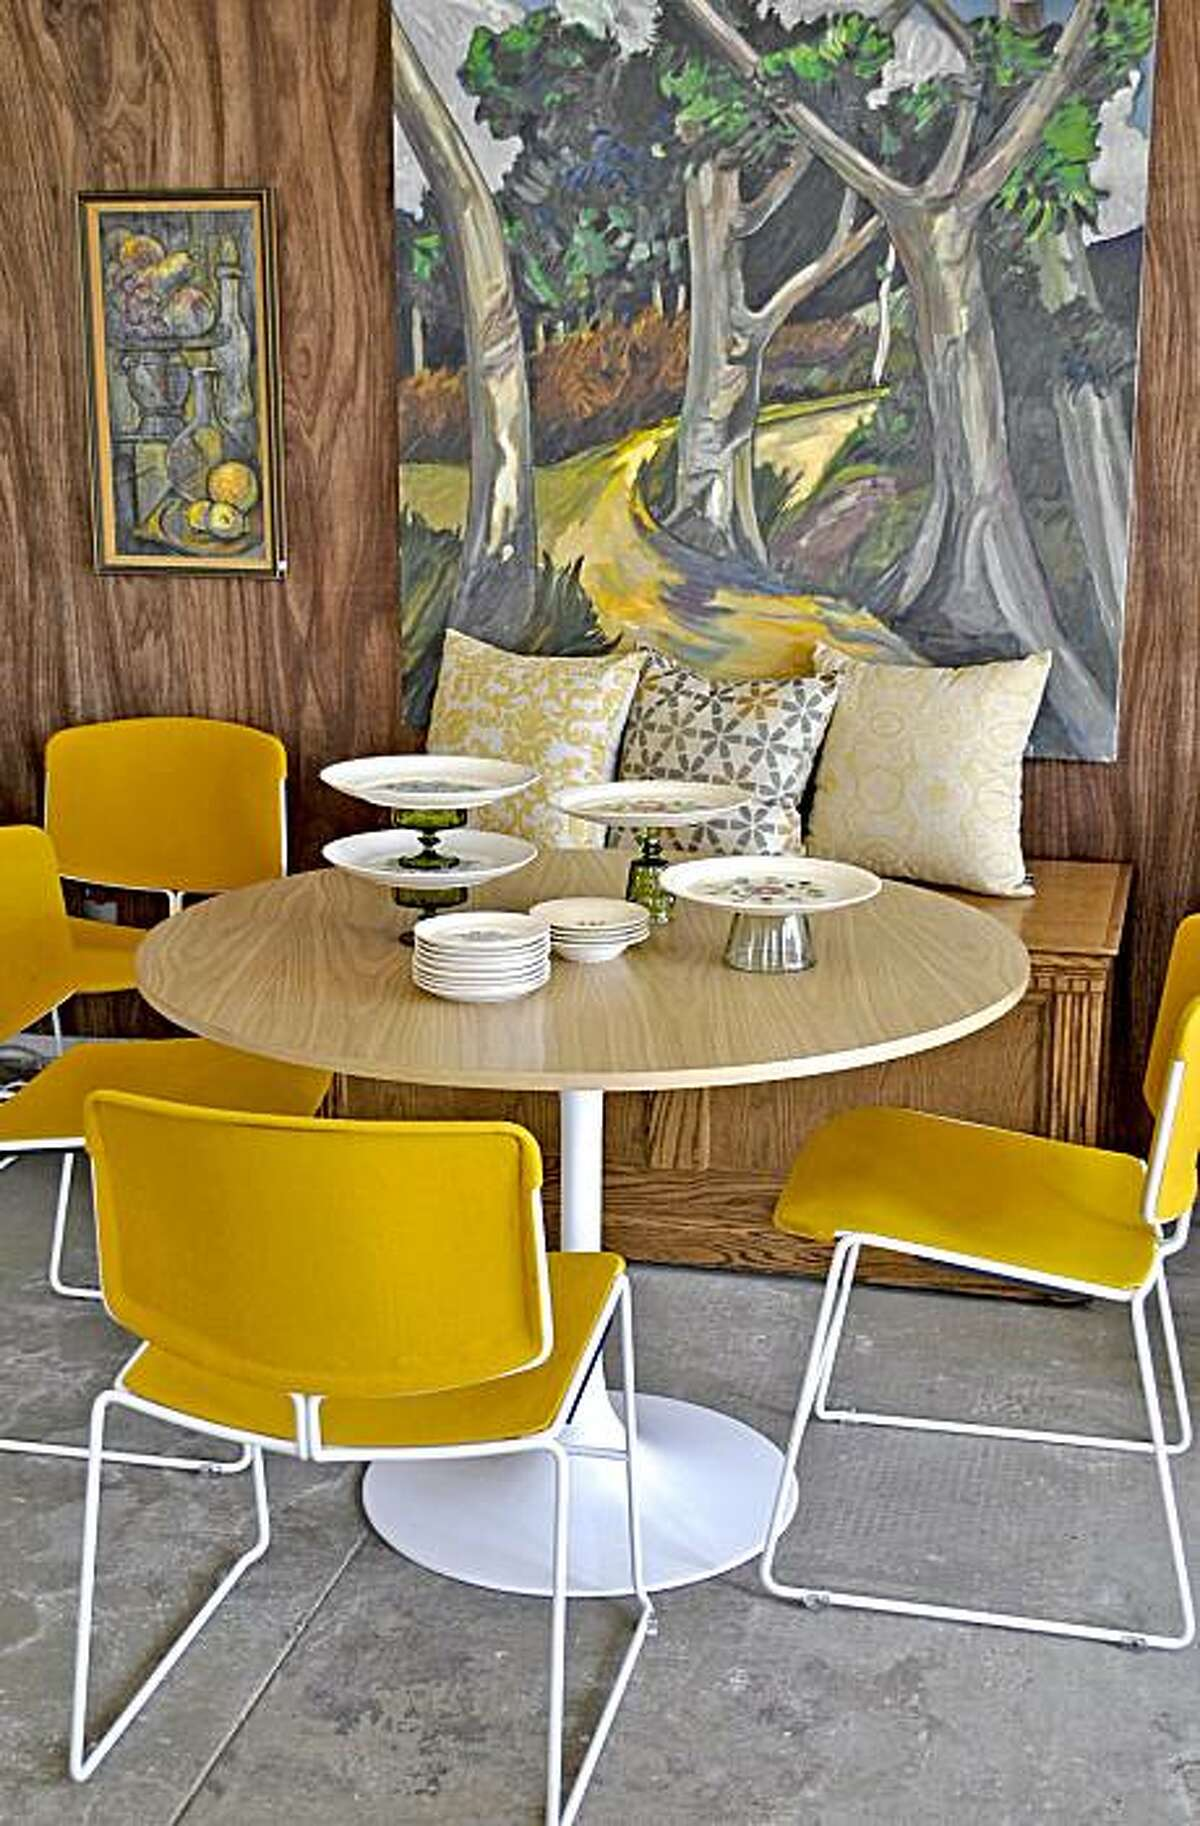 Yellow chairs surround a refurbished tulip table at Lot 49 in Oakland